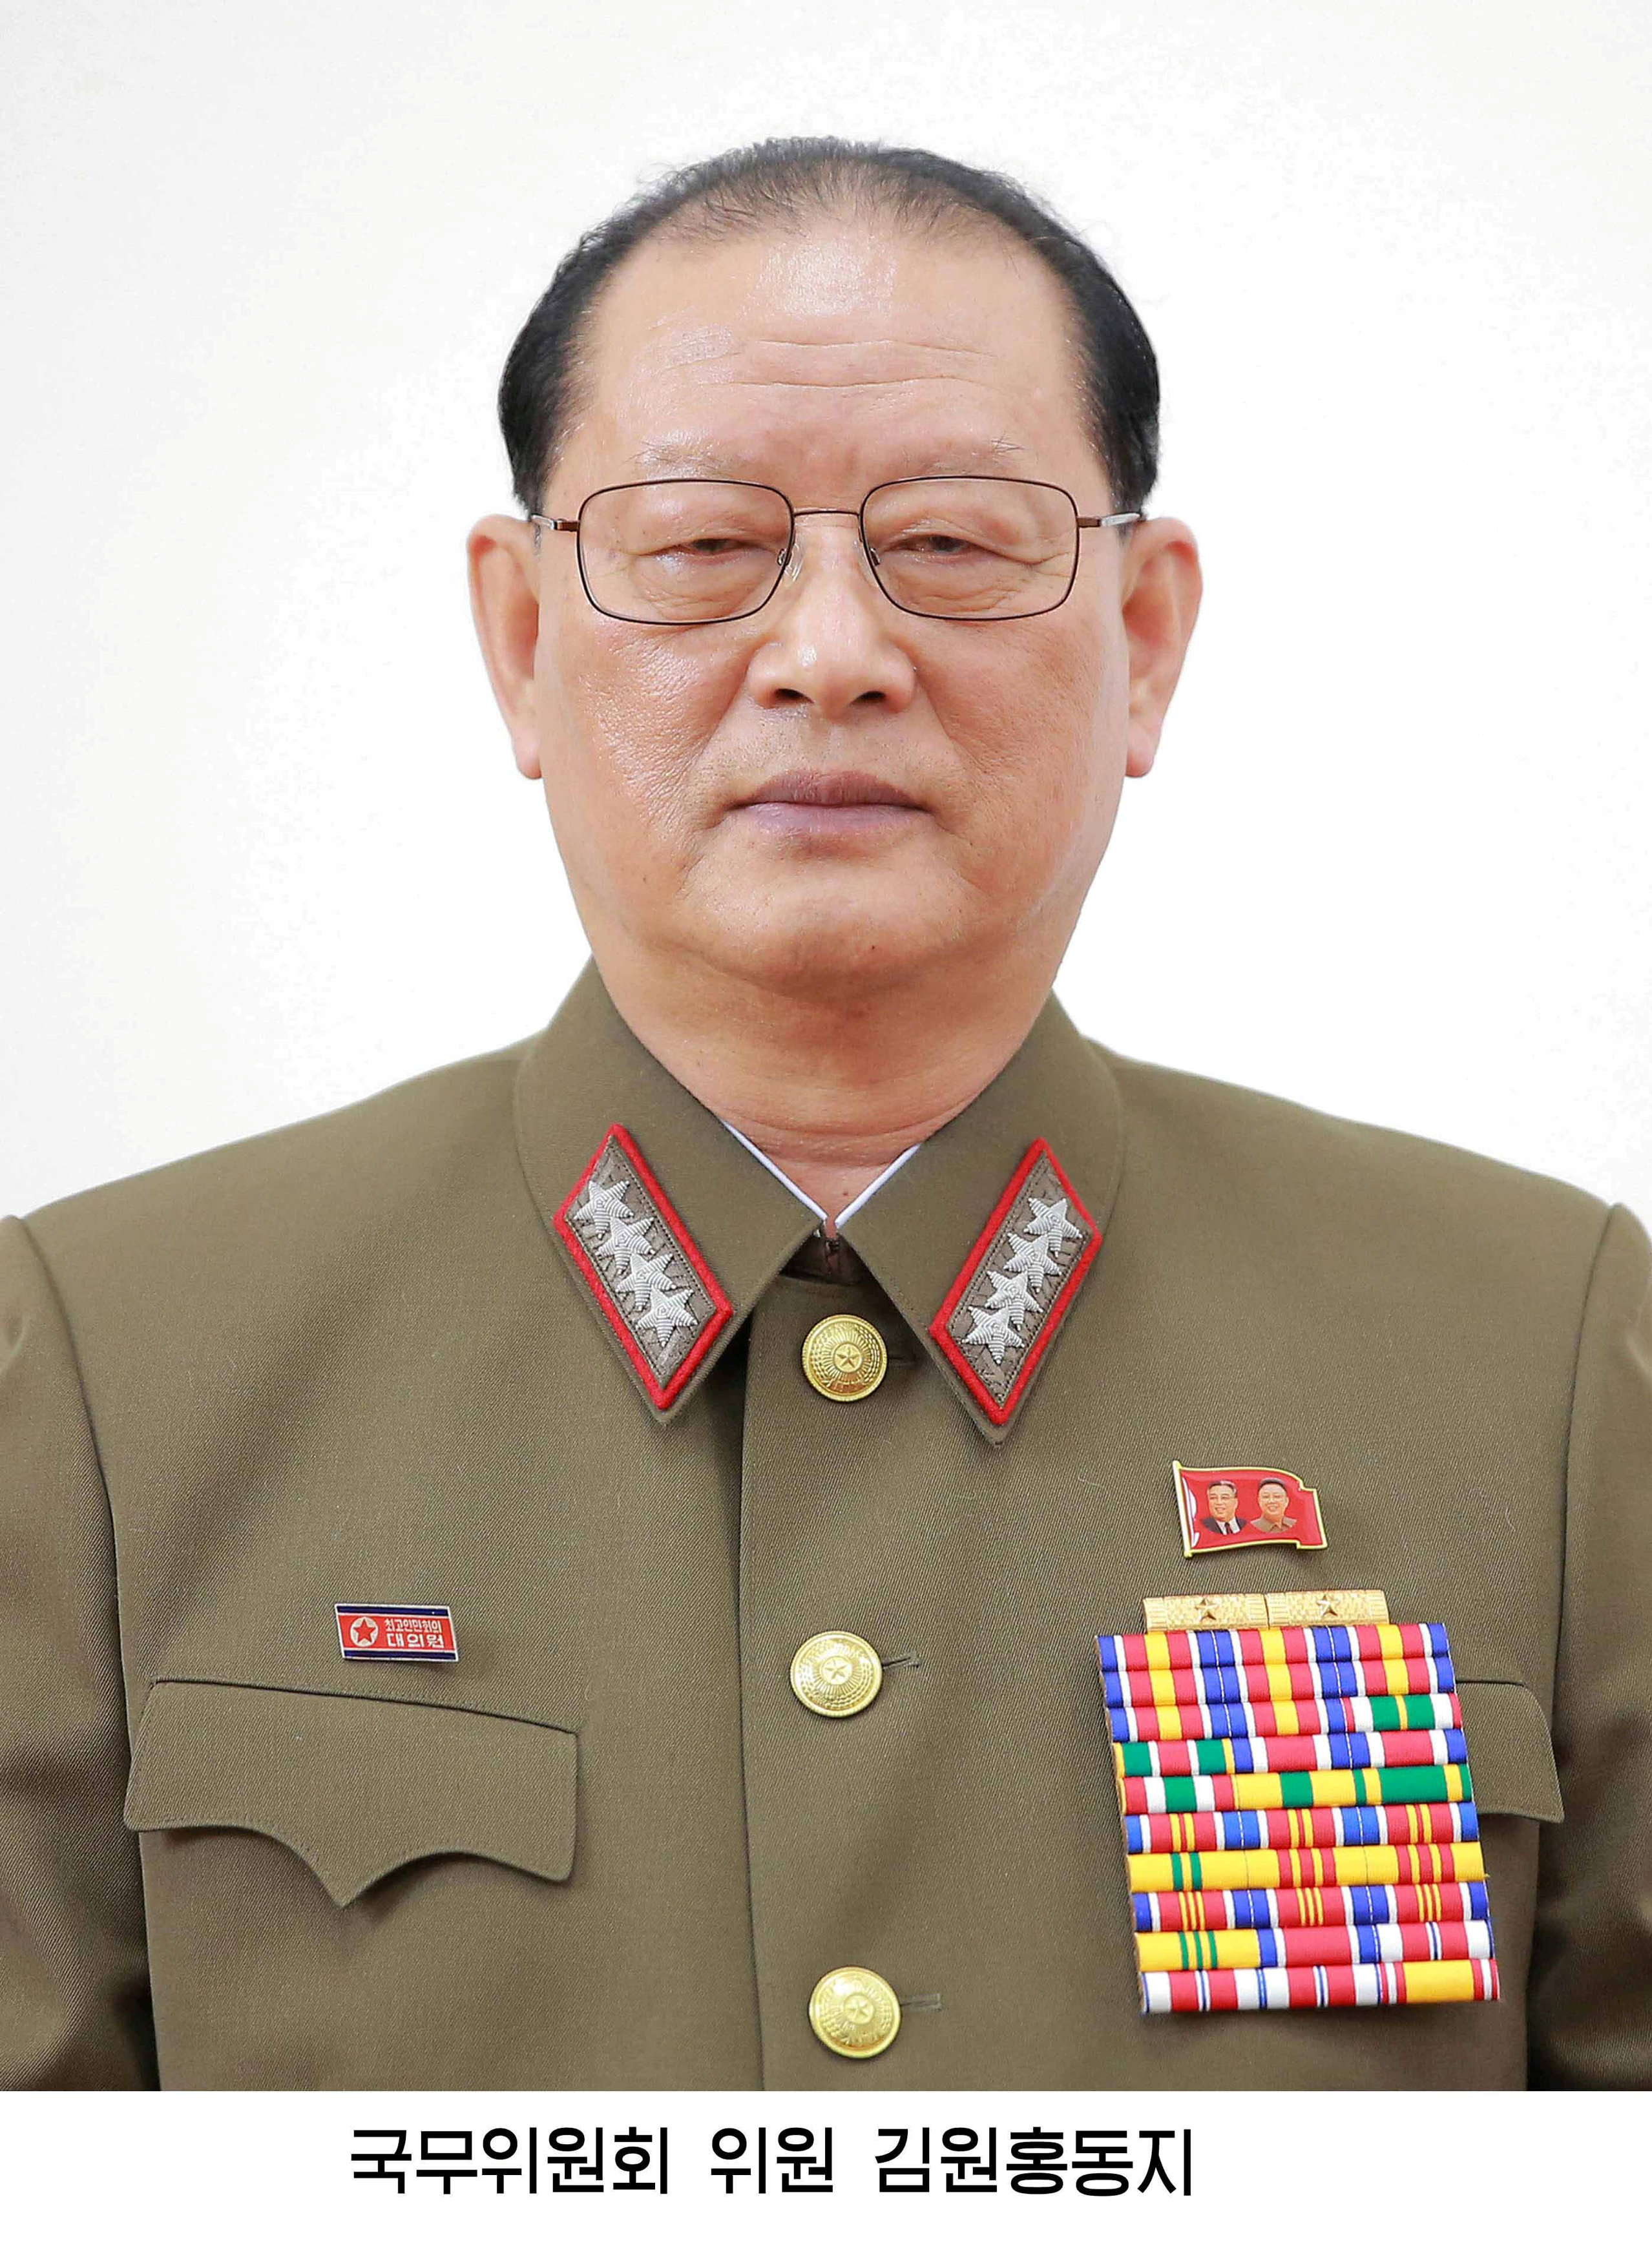 North Korean official